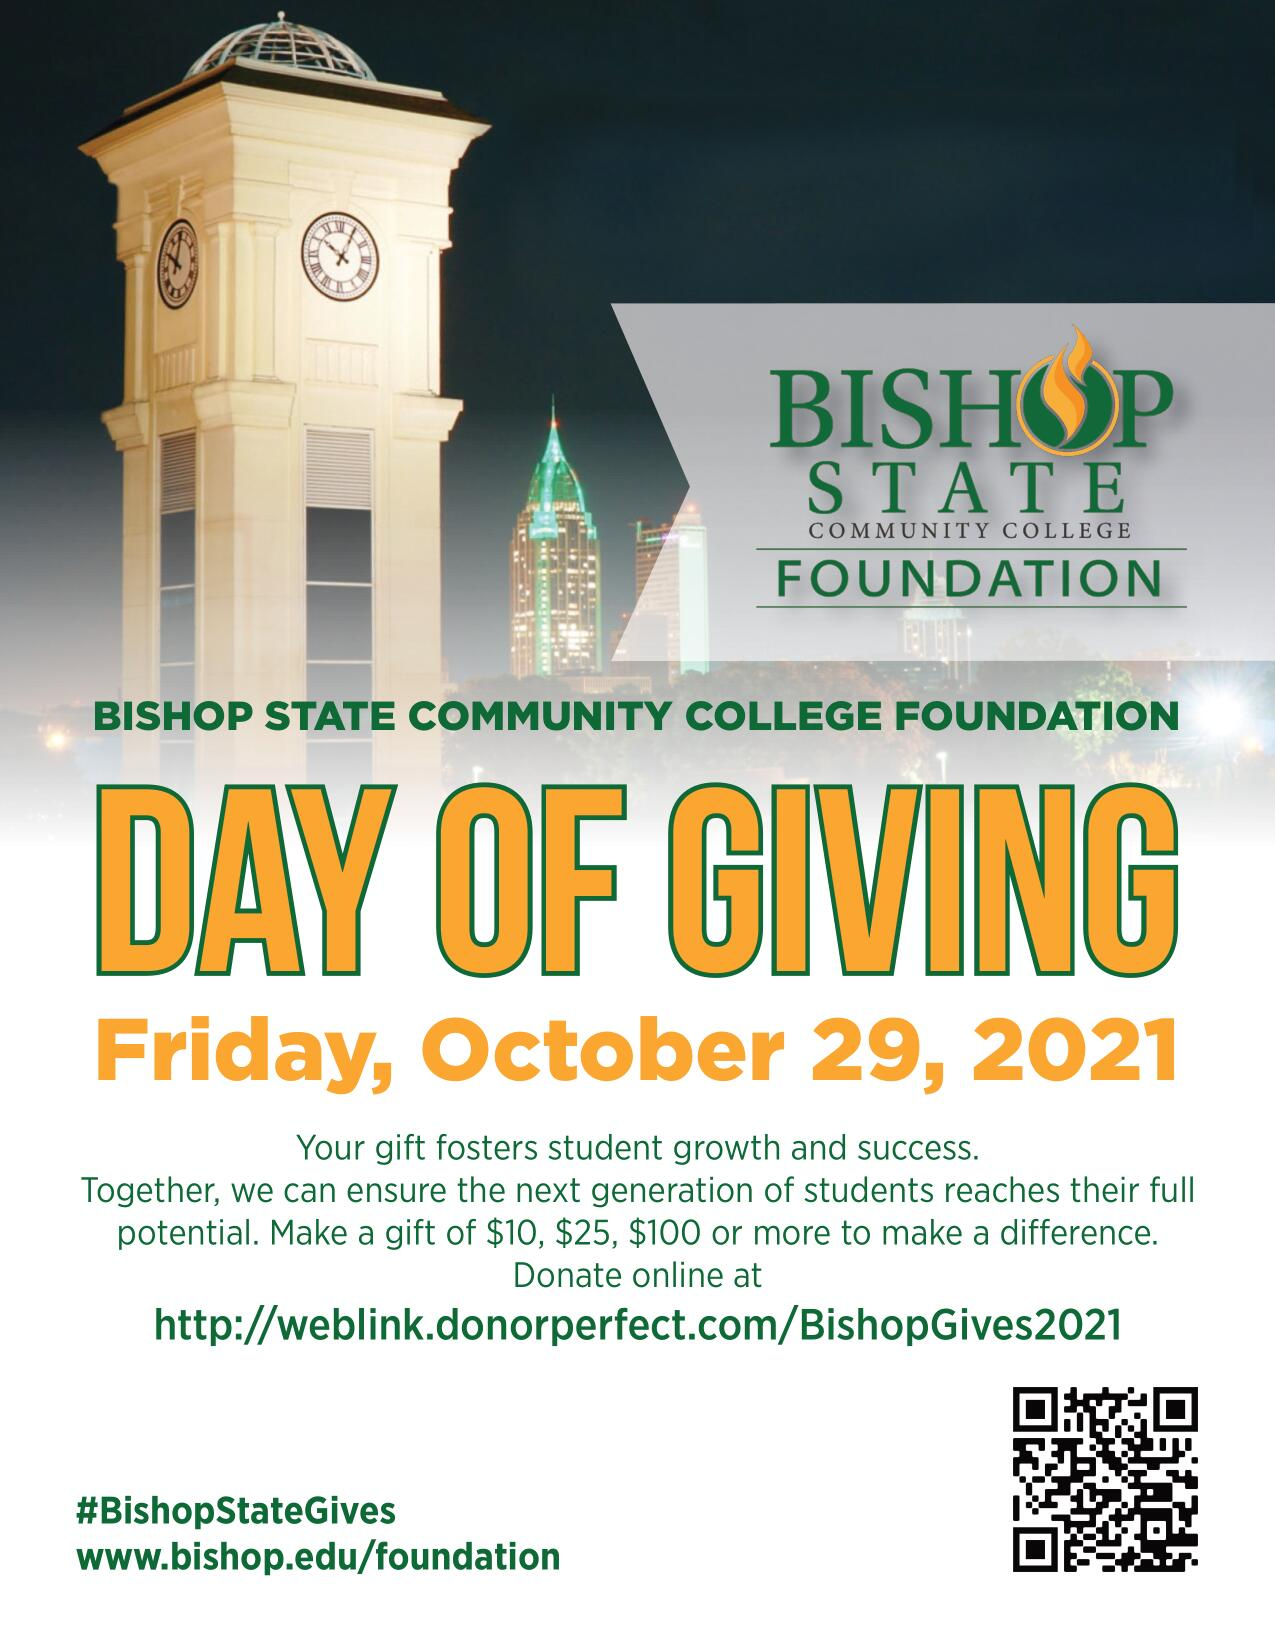 Bishop State Community College Foundation Mobile AL - Day of Giving - October 29 2021